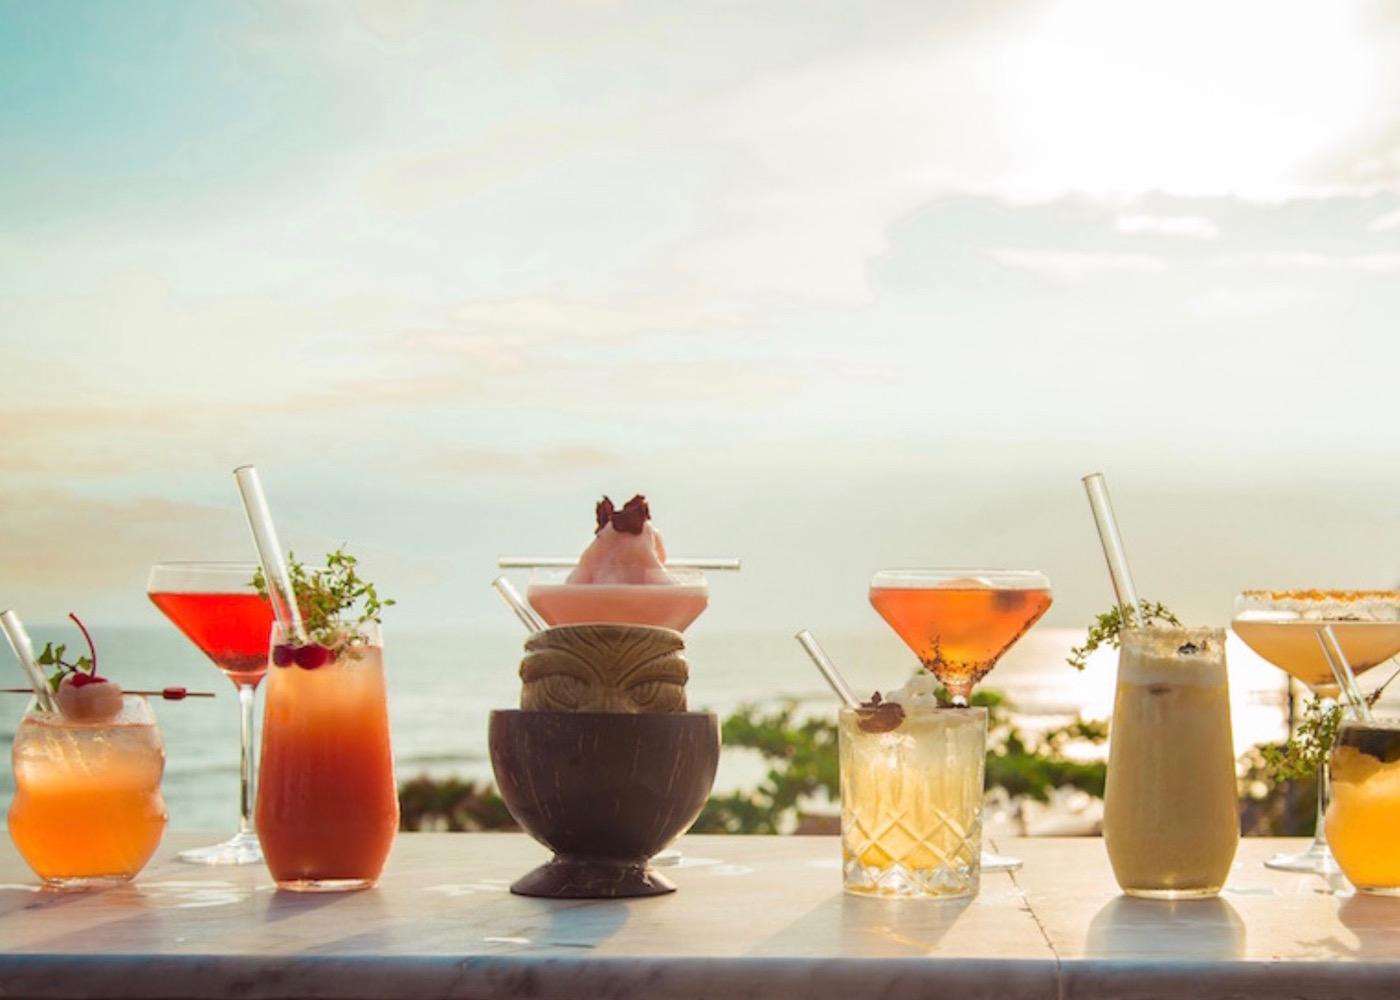 Sunset cocktails overlooking the beach at Ji Terrace by the Sea in Canggu, Bali, Indonesia